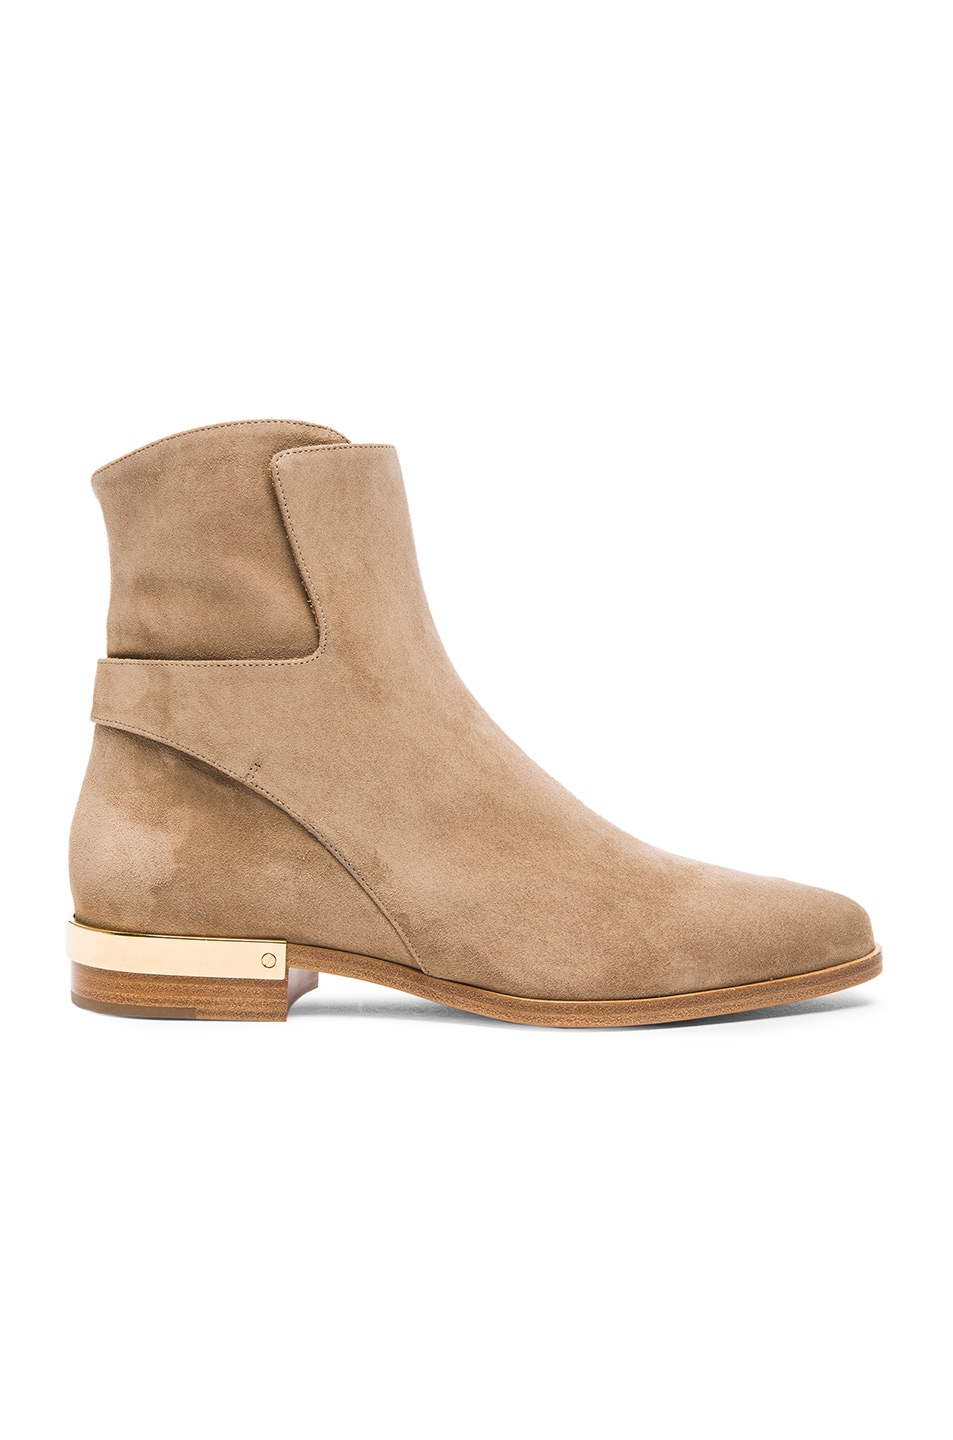 Image 1 of Chloe Suede Boots in Ship Grey